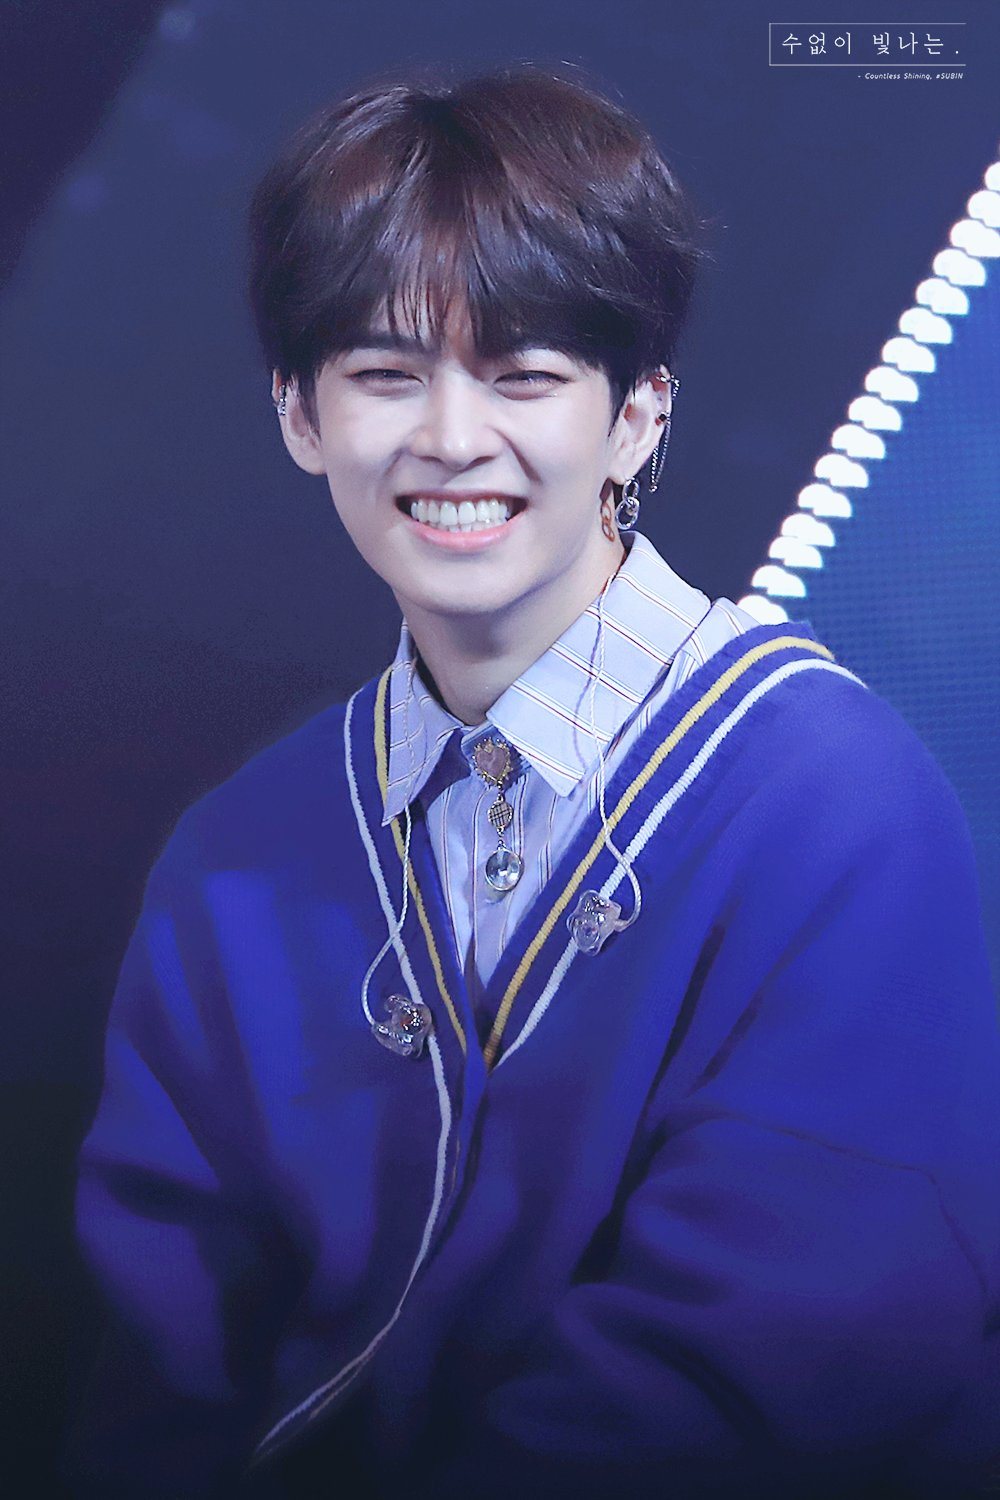 victon, victon profile, victon facts, victon members, victon debut, victon comeback, victon weight, victon age, victon maknae, victon subin, subin